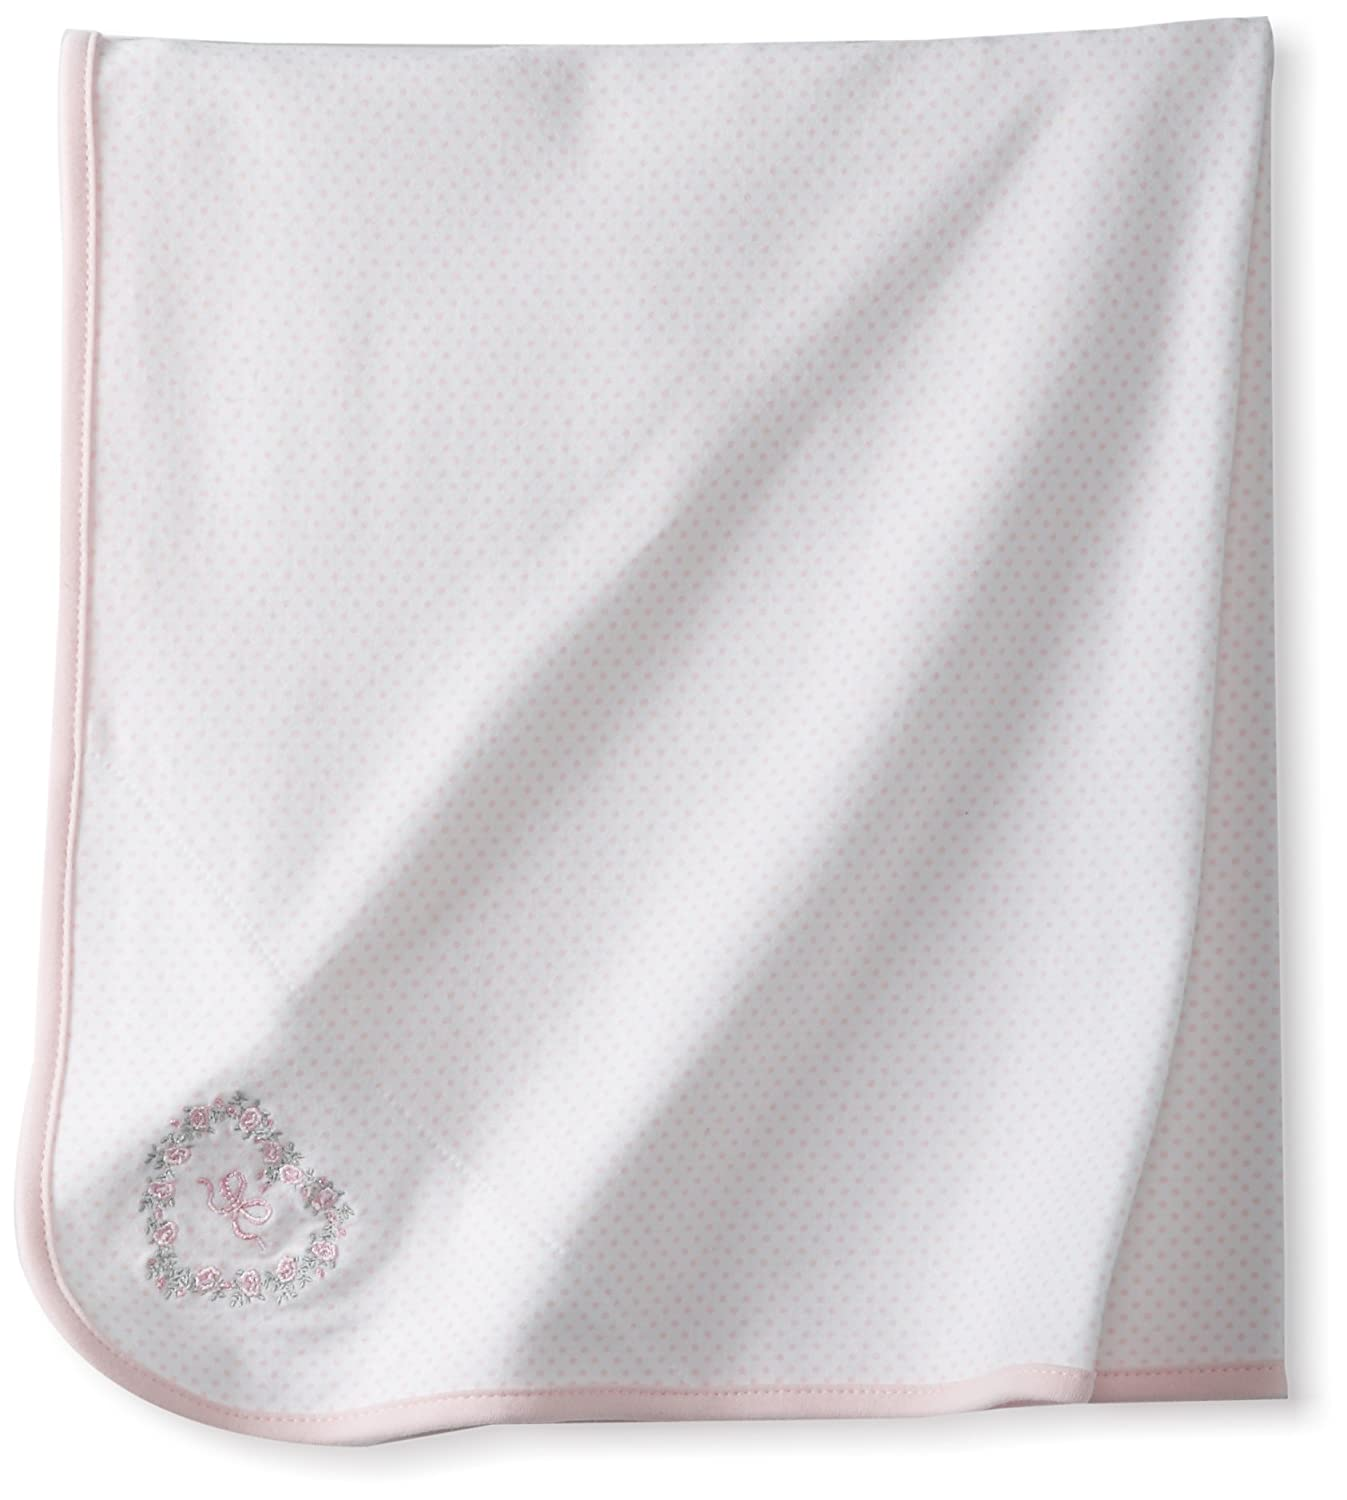 Little Me baby-girls Blanket White/Pink One Size 2-Pack LB700454N